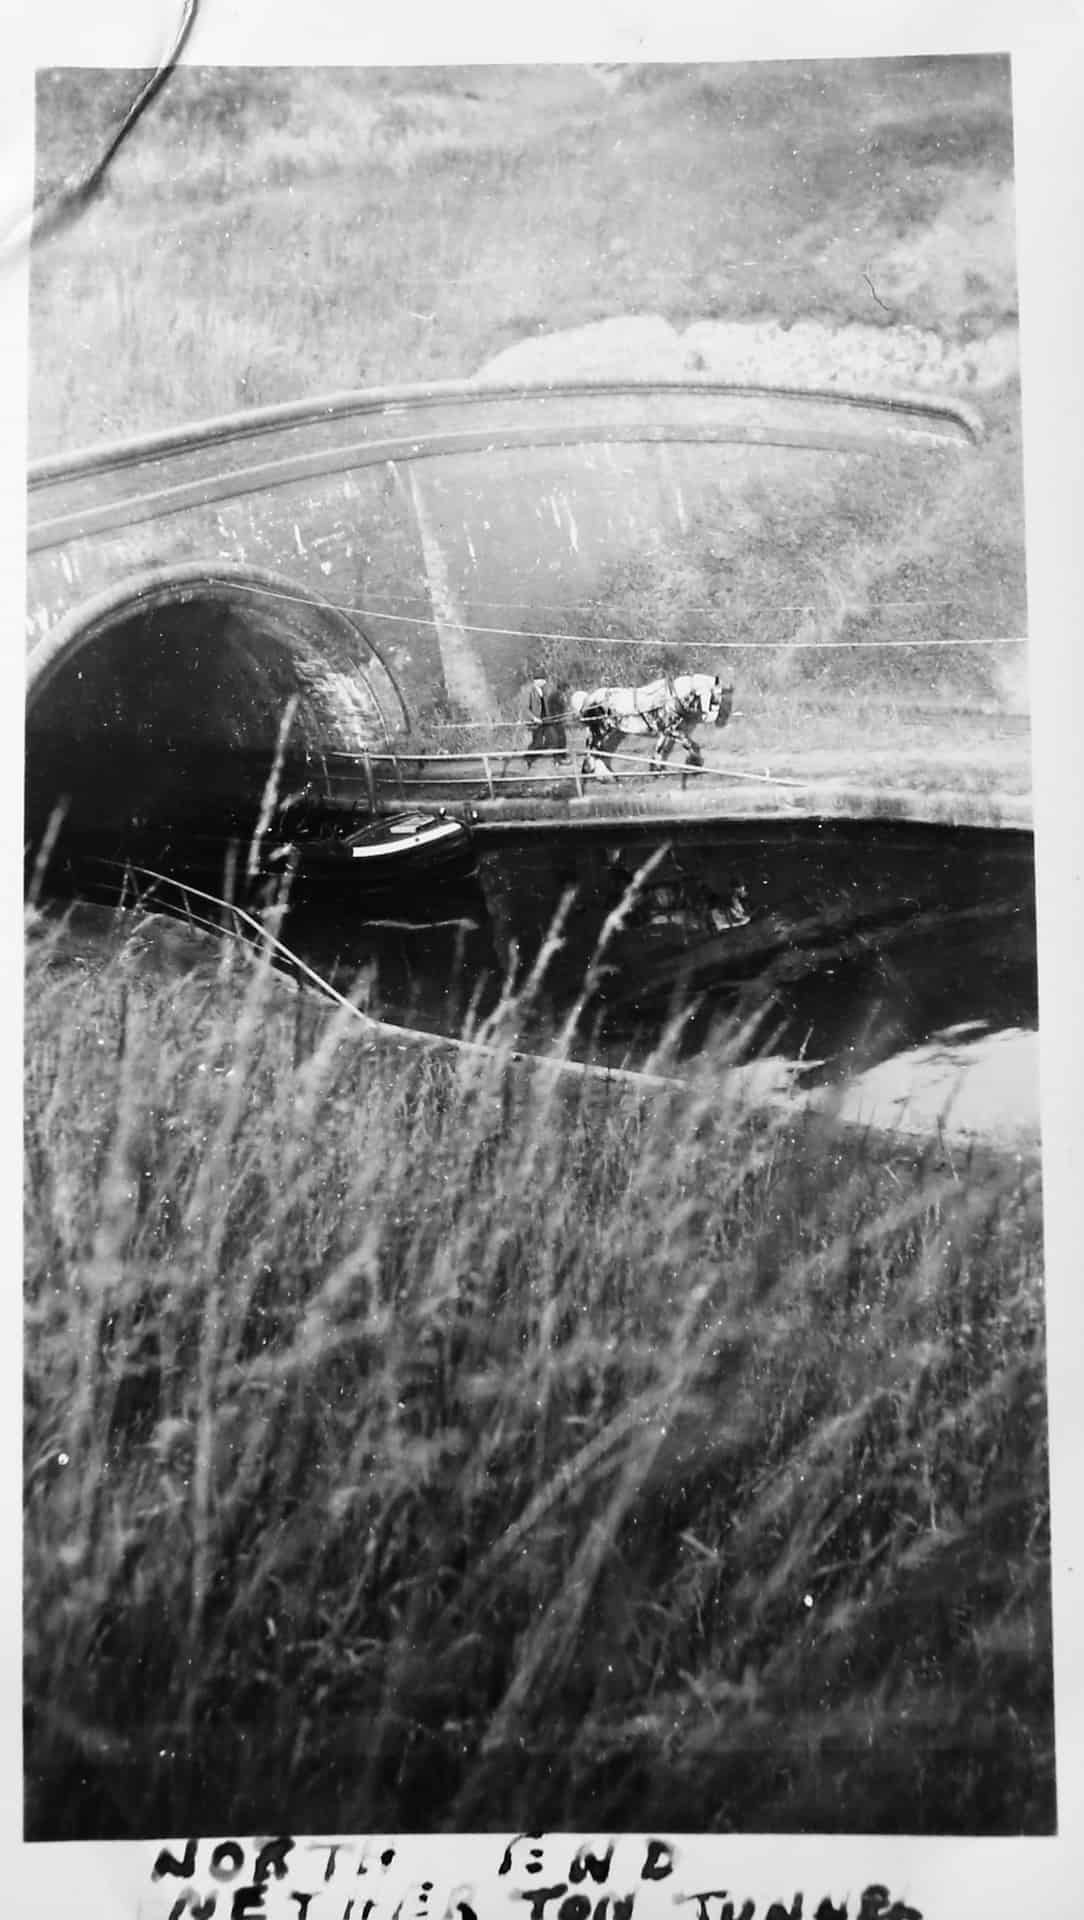 Working horse and boatman leaving north end of Netherton Tunnel c 1950s